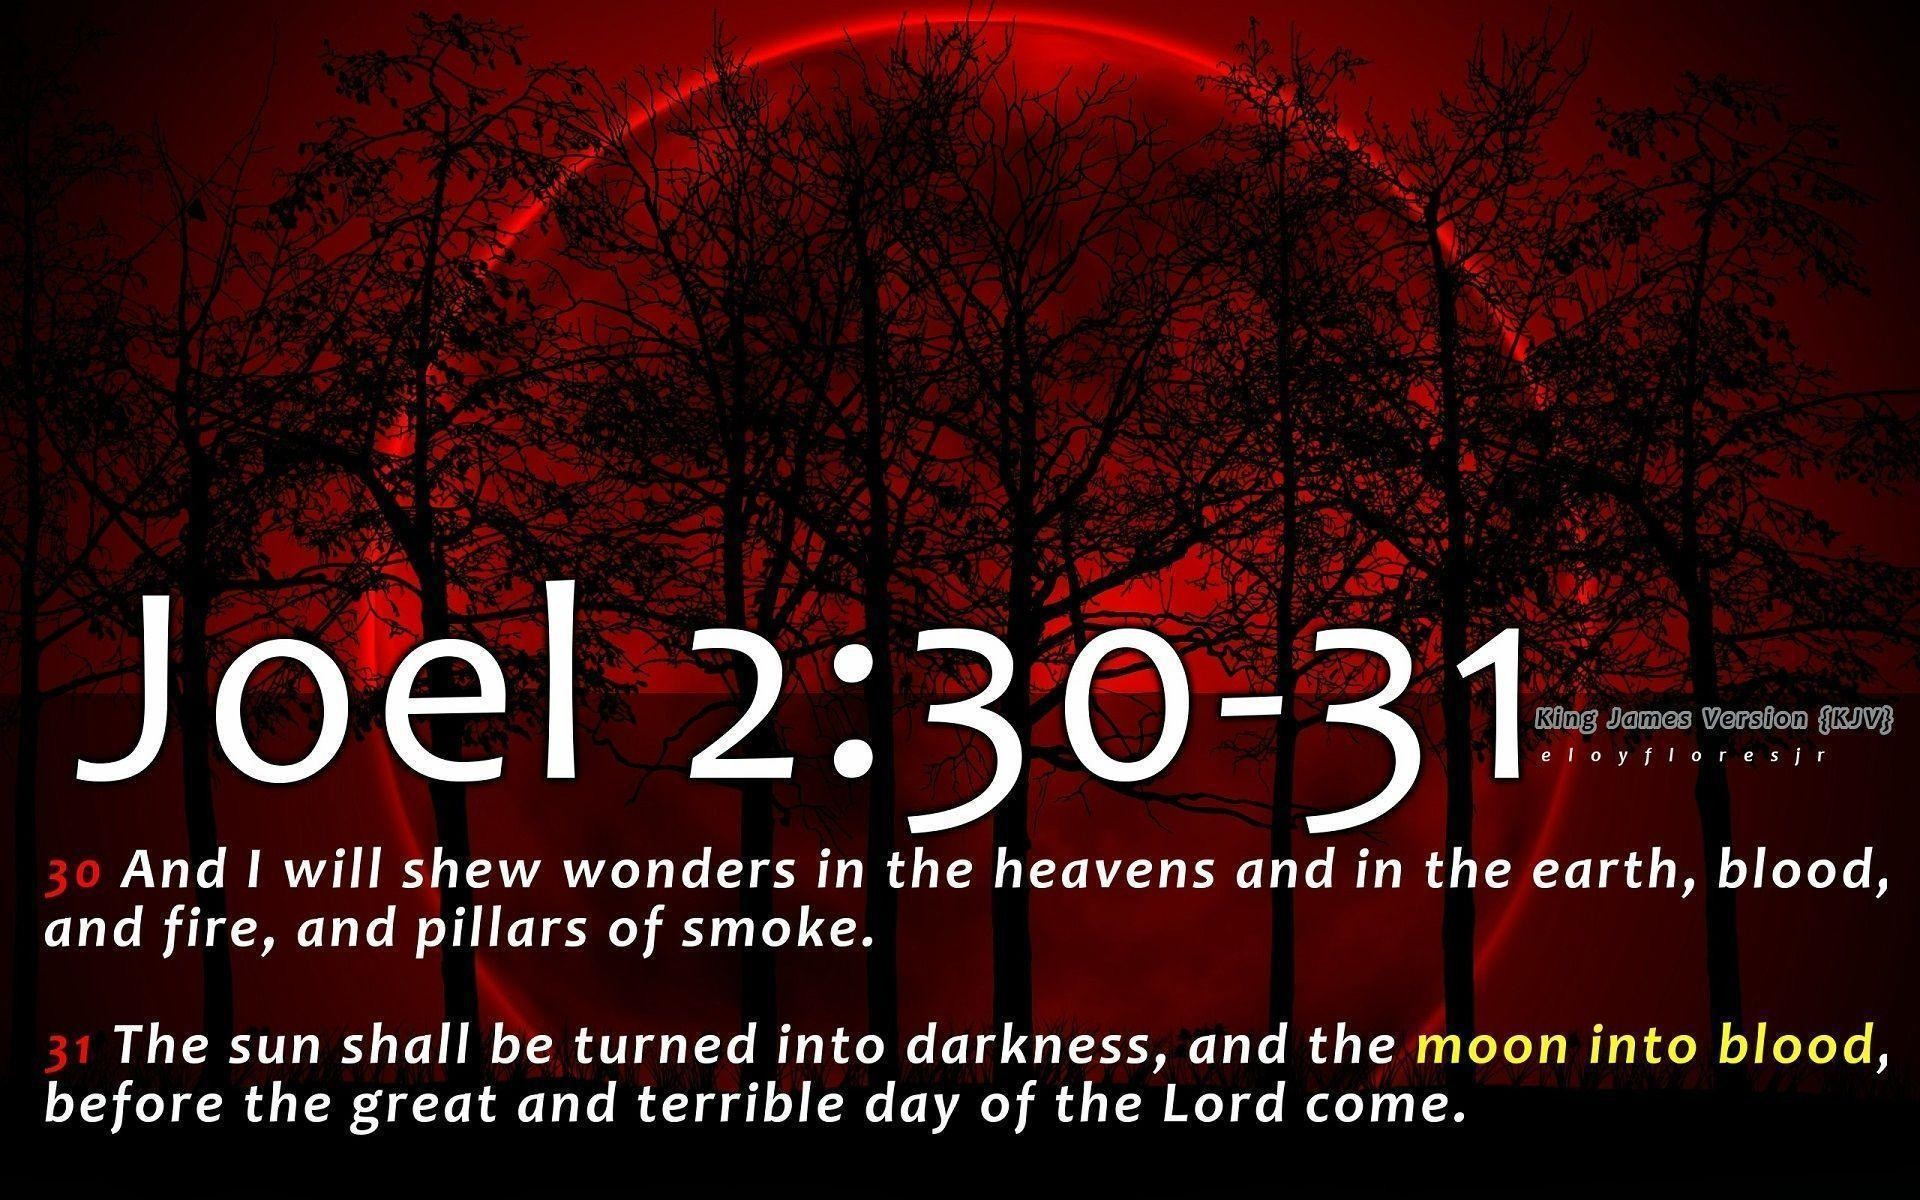 1920x1200 Jesus wallpapers with bible verses wallpaper cave jpg  King james  bible verse wallpaper